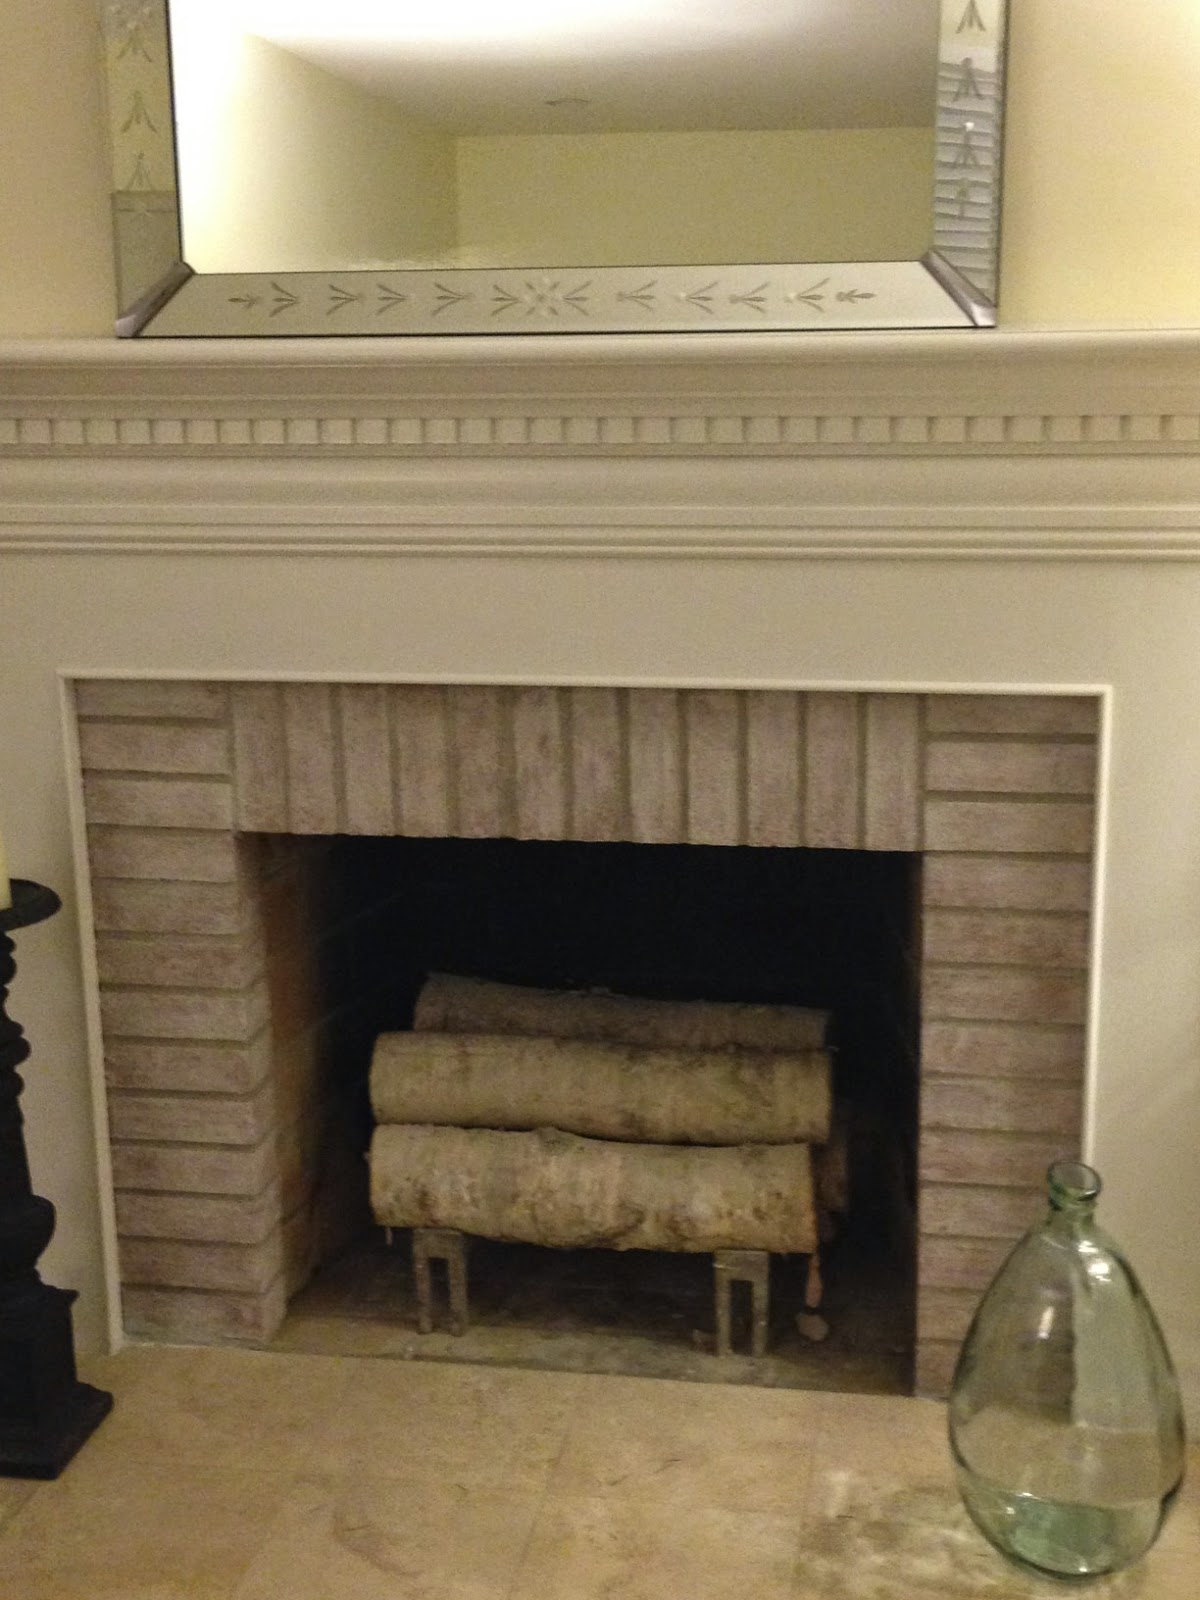 Over The Holidays When Catching Up On Blog Reading One Of Blogs I Love Mentioned Painting Inside Fireplace Black Had Wondered If This Was